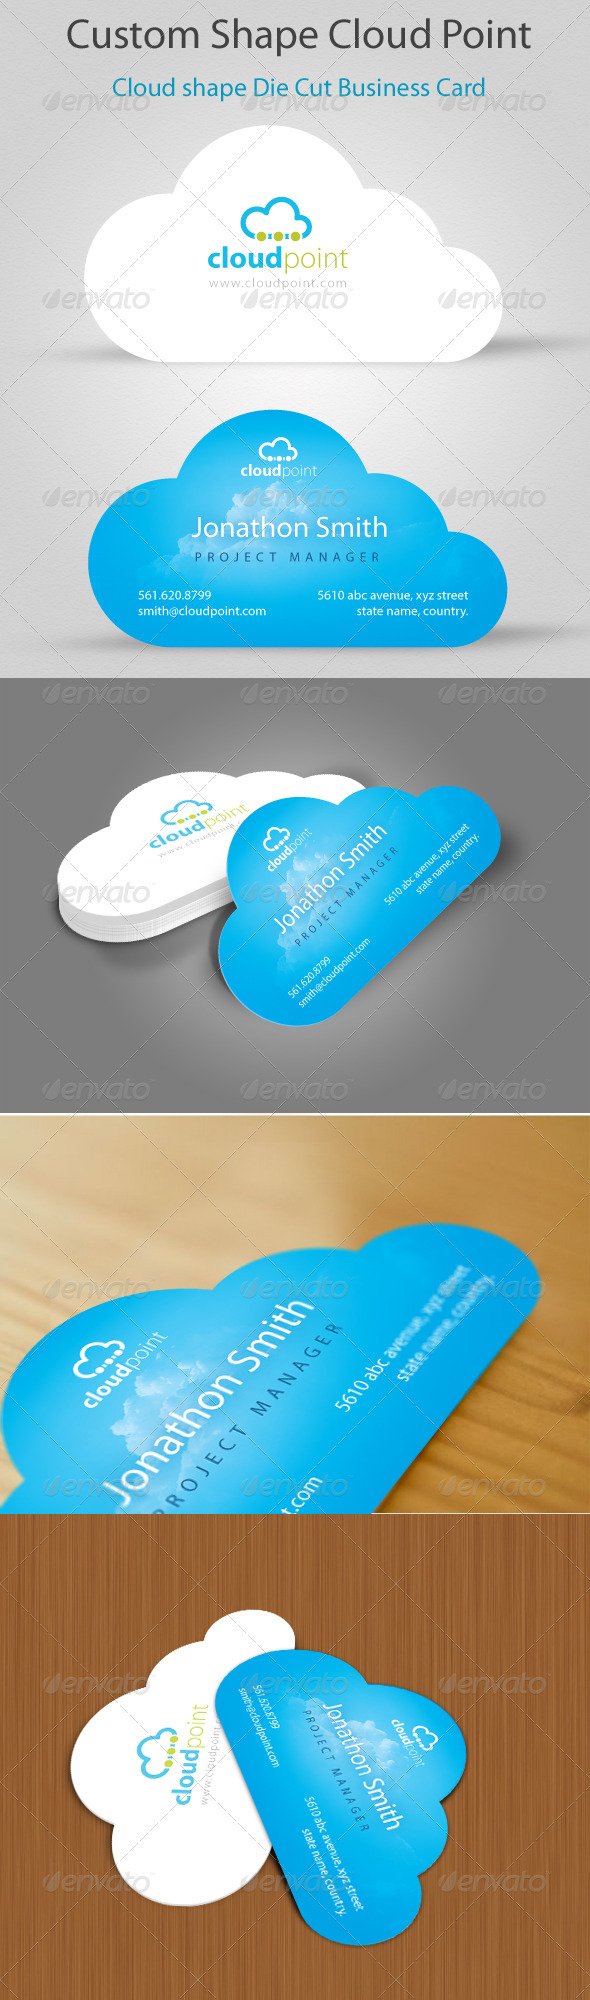 GraphicRiver Cloud Point Custom Shape Die cut Business Card 3663275